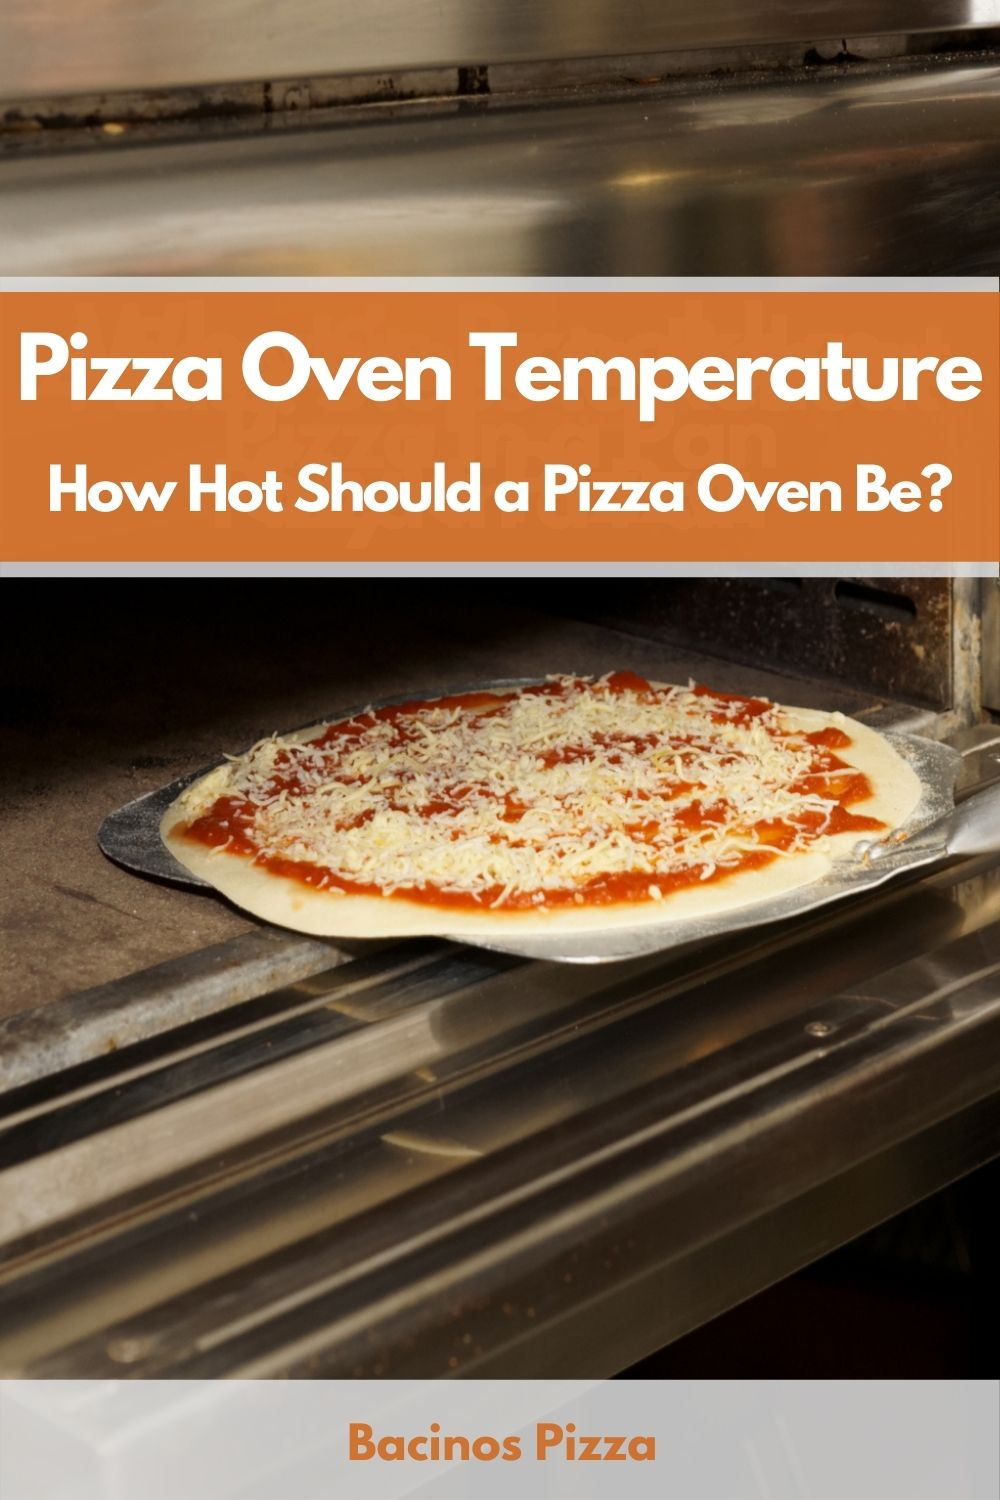 Pizza Oven Temperature How Hot Should a Pizza Oven Be pin